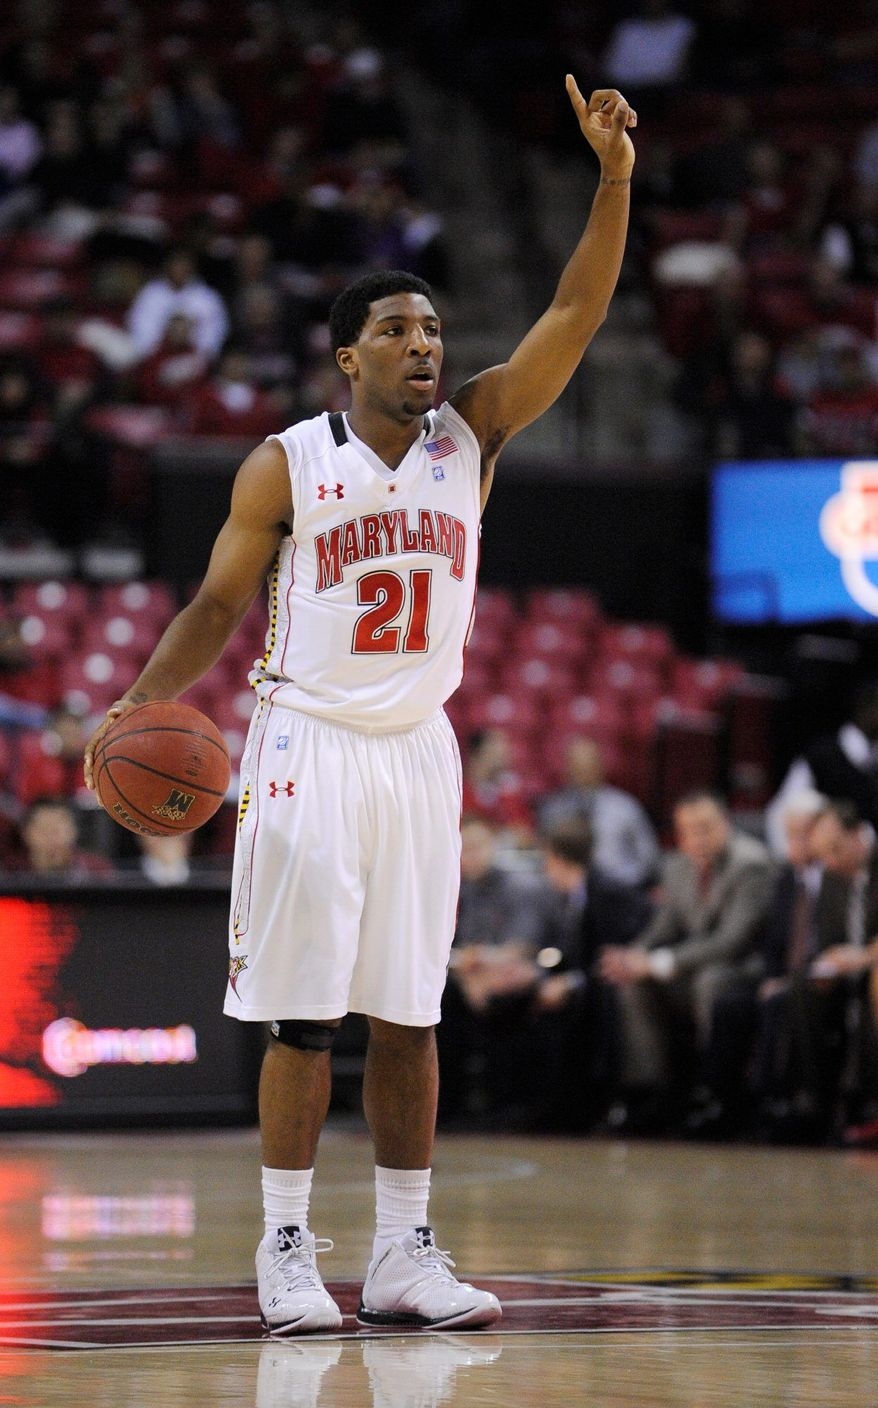 Maryland guard Pe'Shon Howard dribbles the ball against North Florida during the first half of an NCAA college basketball game, Wednesday, Dec. 29, 2010, in College Park, Md. (AP Photo/Nick Wass)